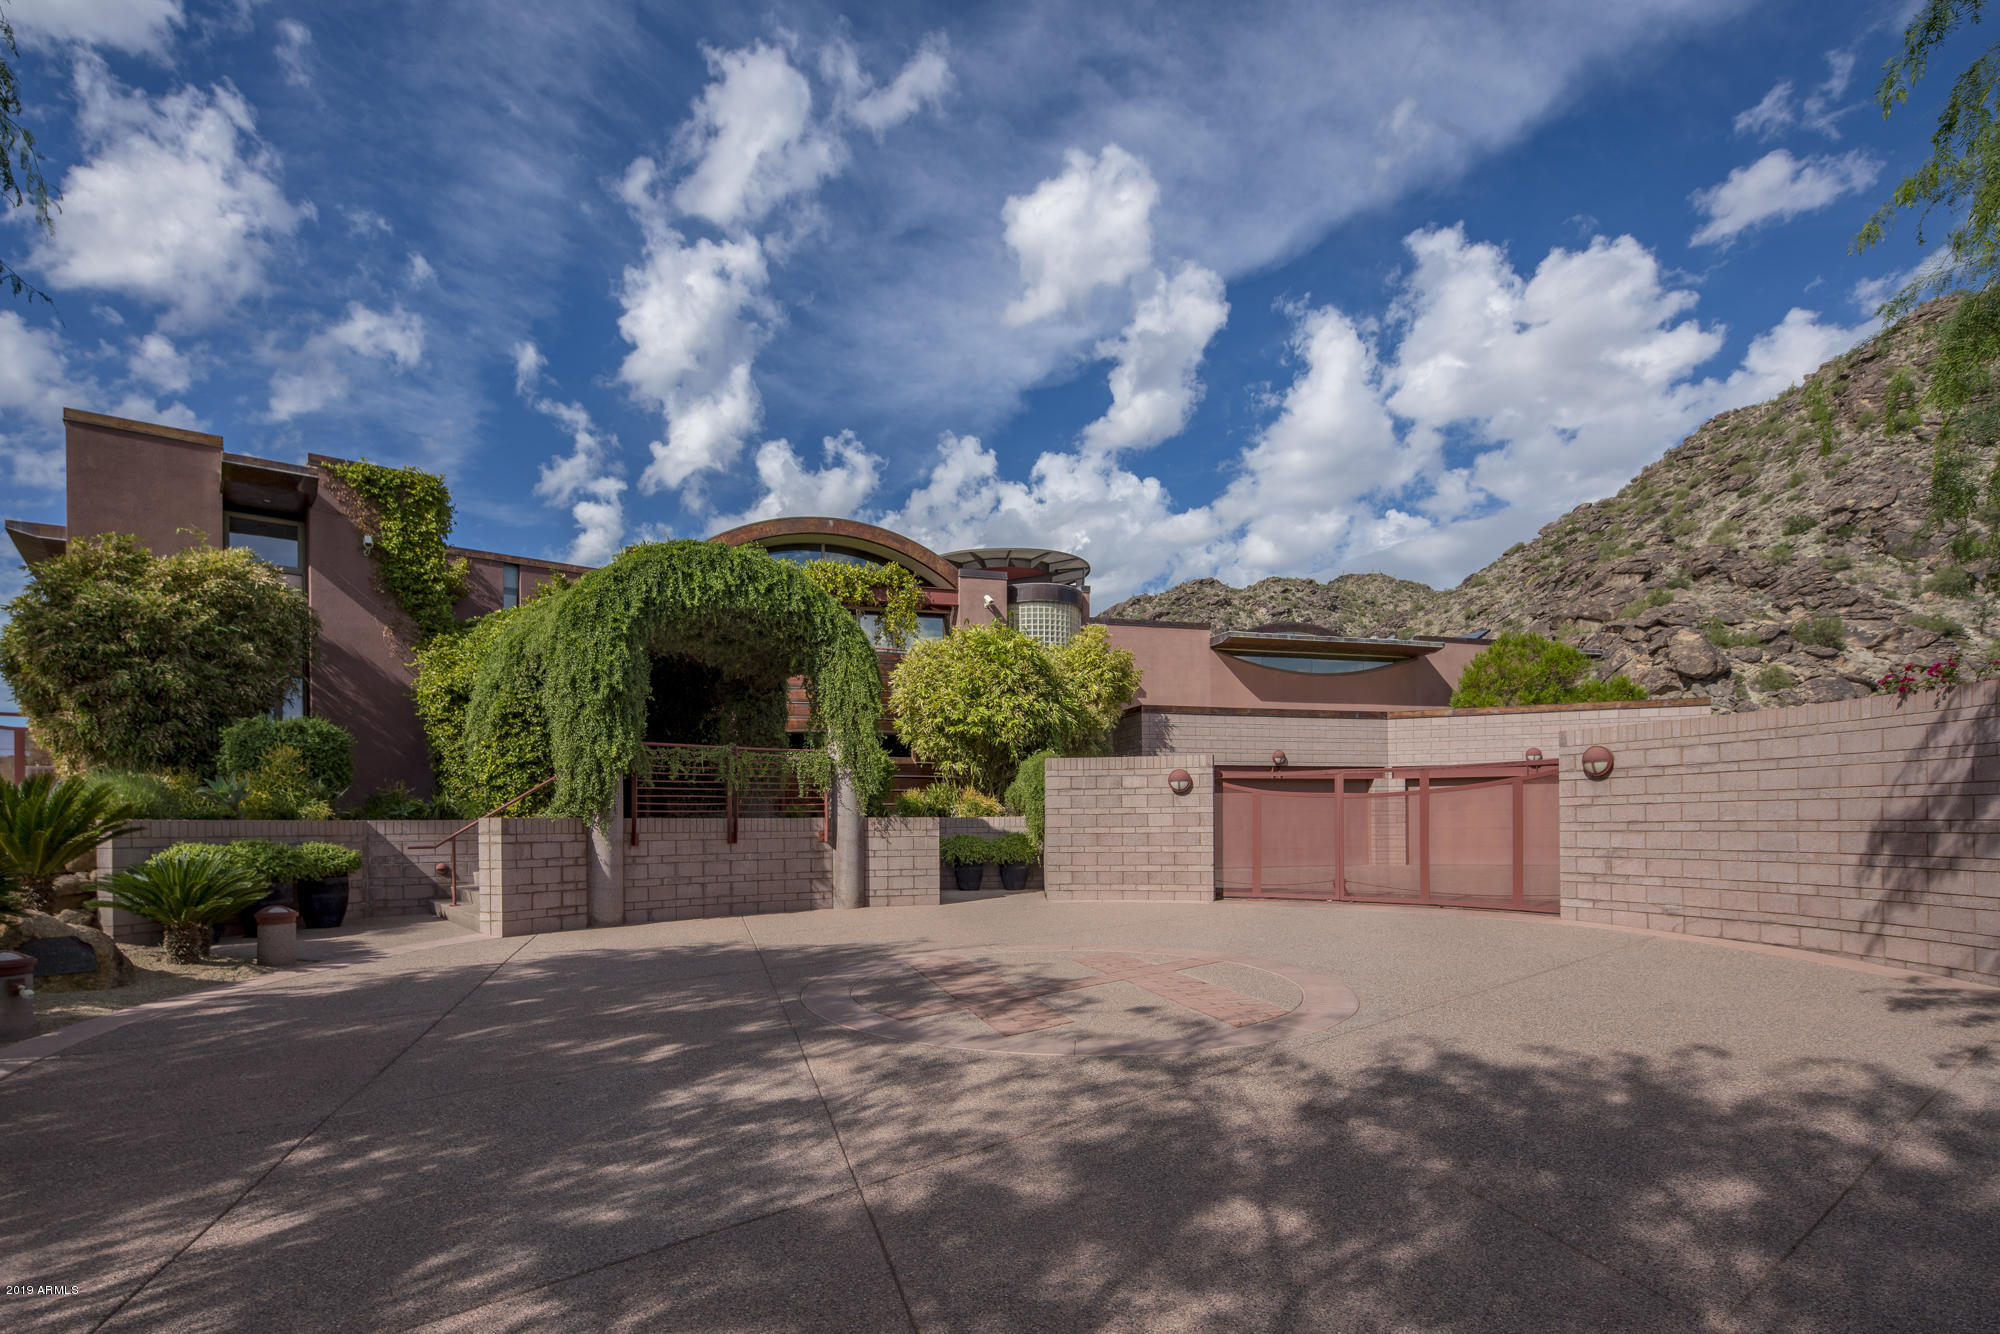 MLS 5864419 11616 S EQUESTRIAN Trail, Phoenix, AZ 85044 Phoenix AZ Private Pool